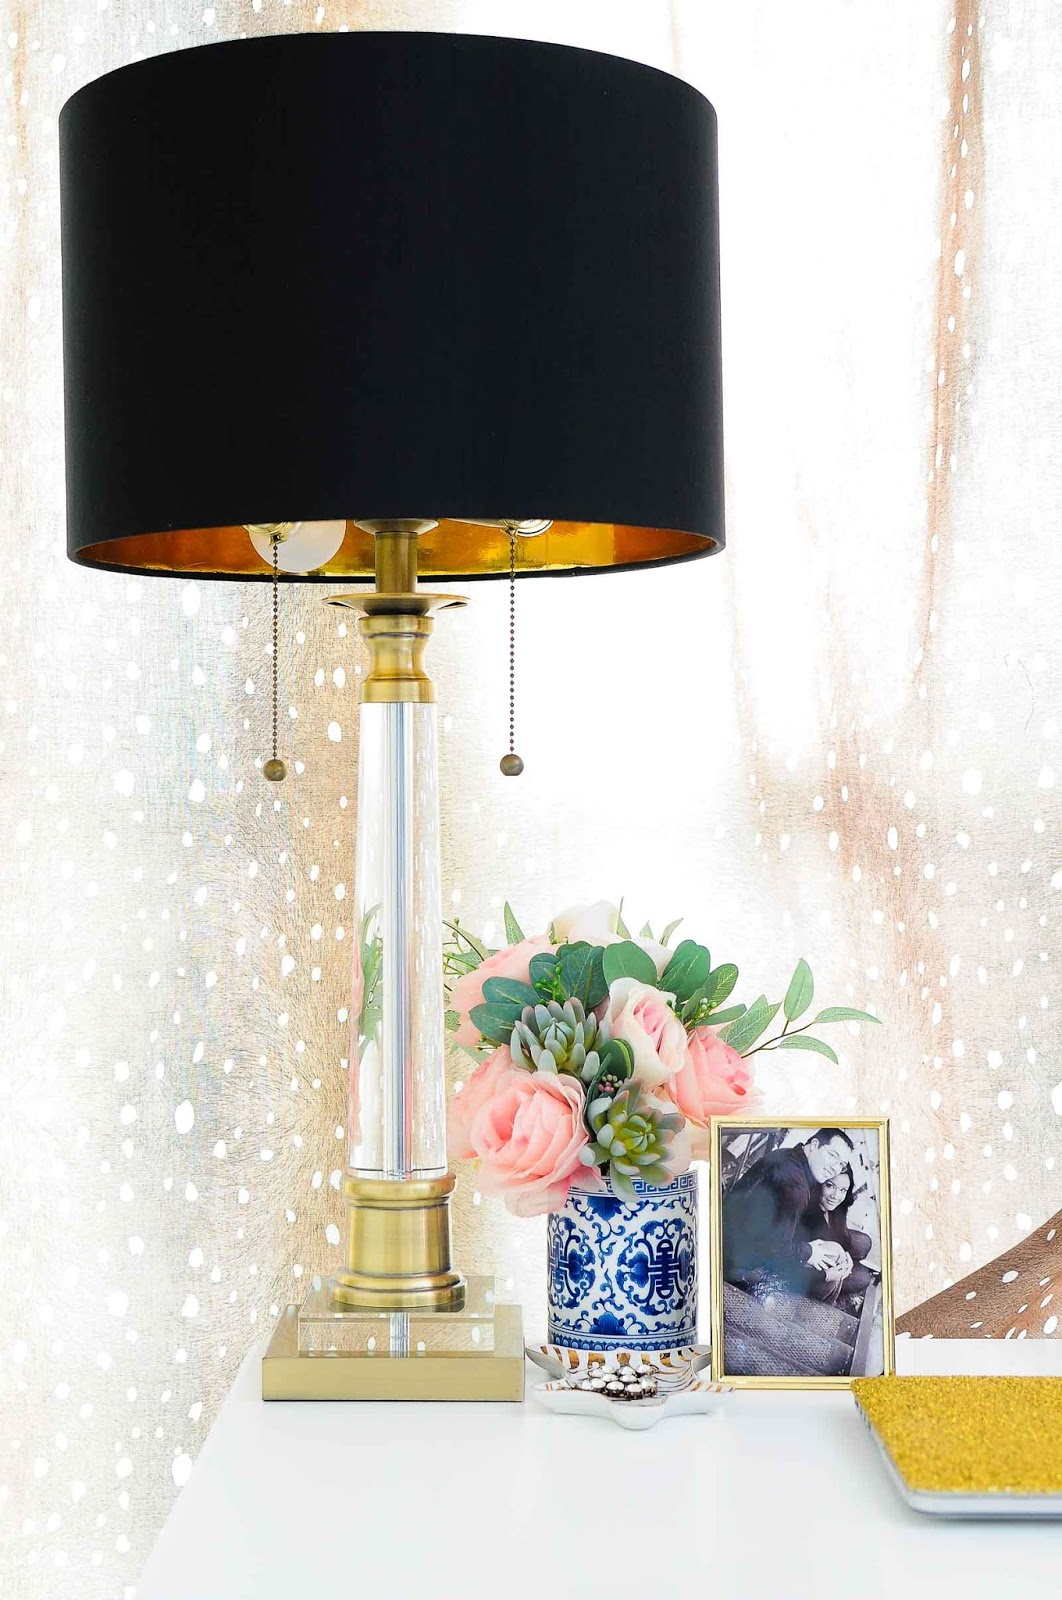 Stephan Crystal table lamp with black and gold lampshade